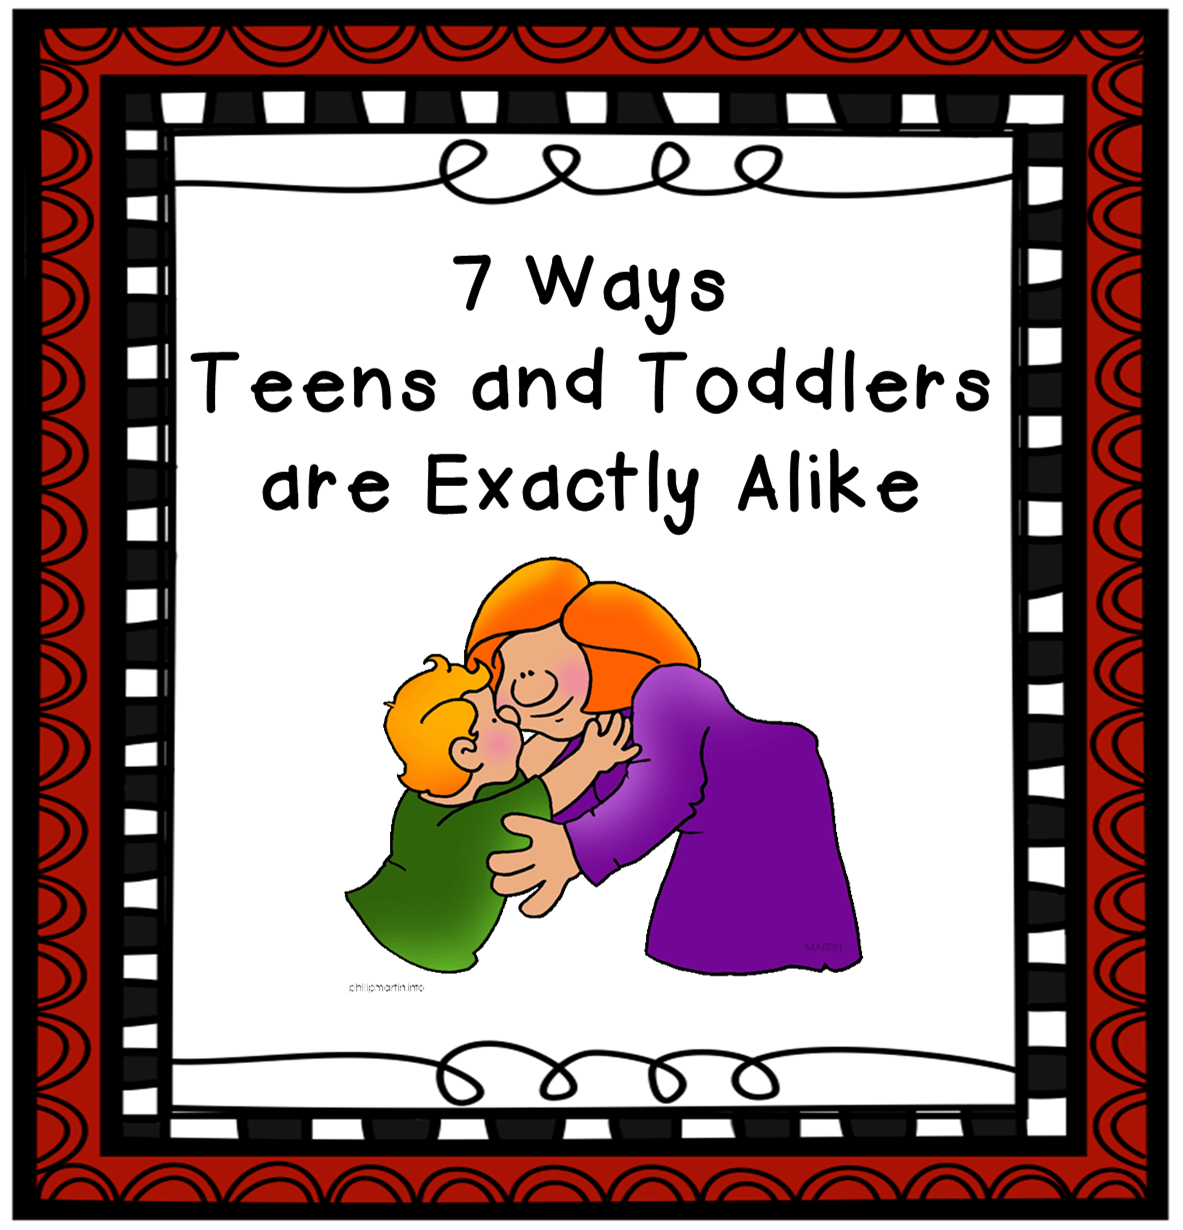 7 Ways Teens and Toddlers are Exactly Alike